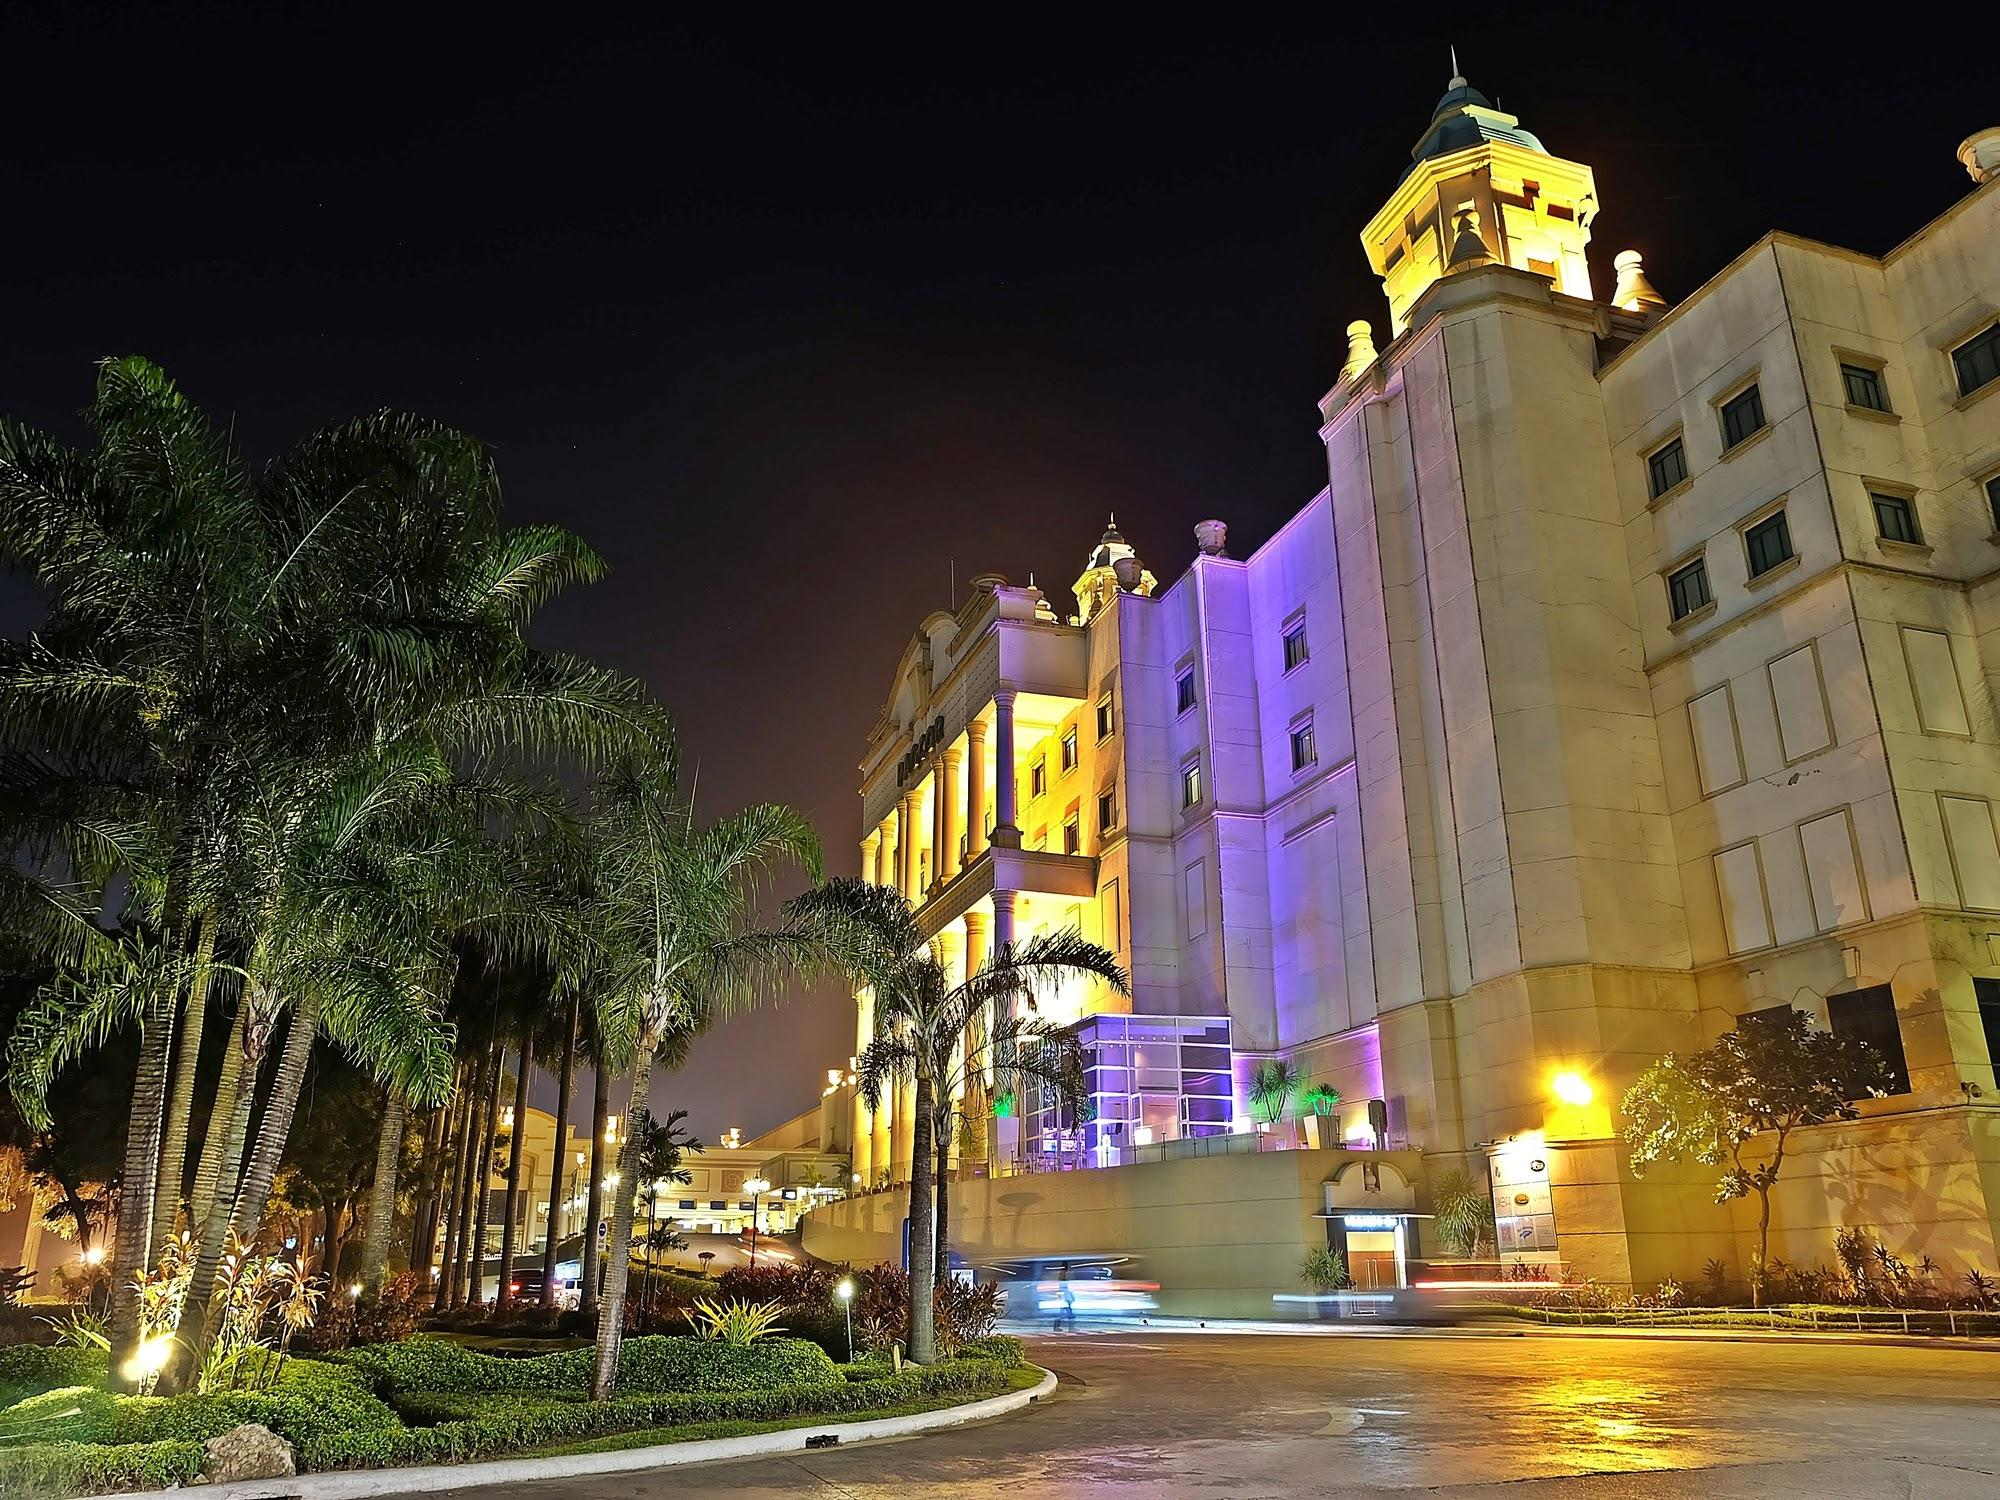 Waterfront Cebu City Hotel and Casino Sebu